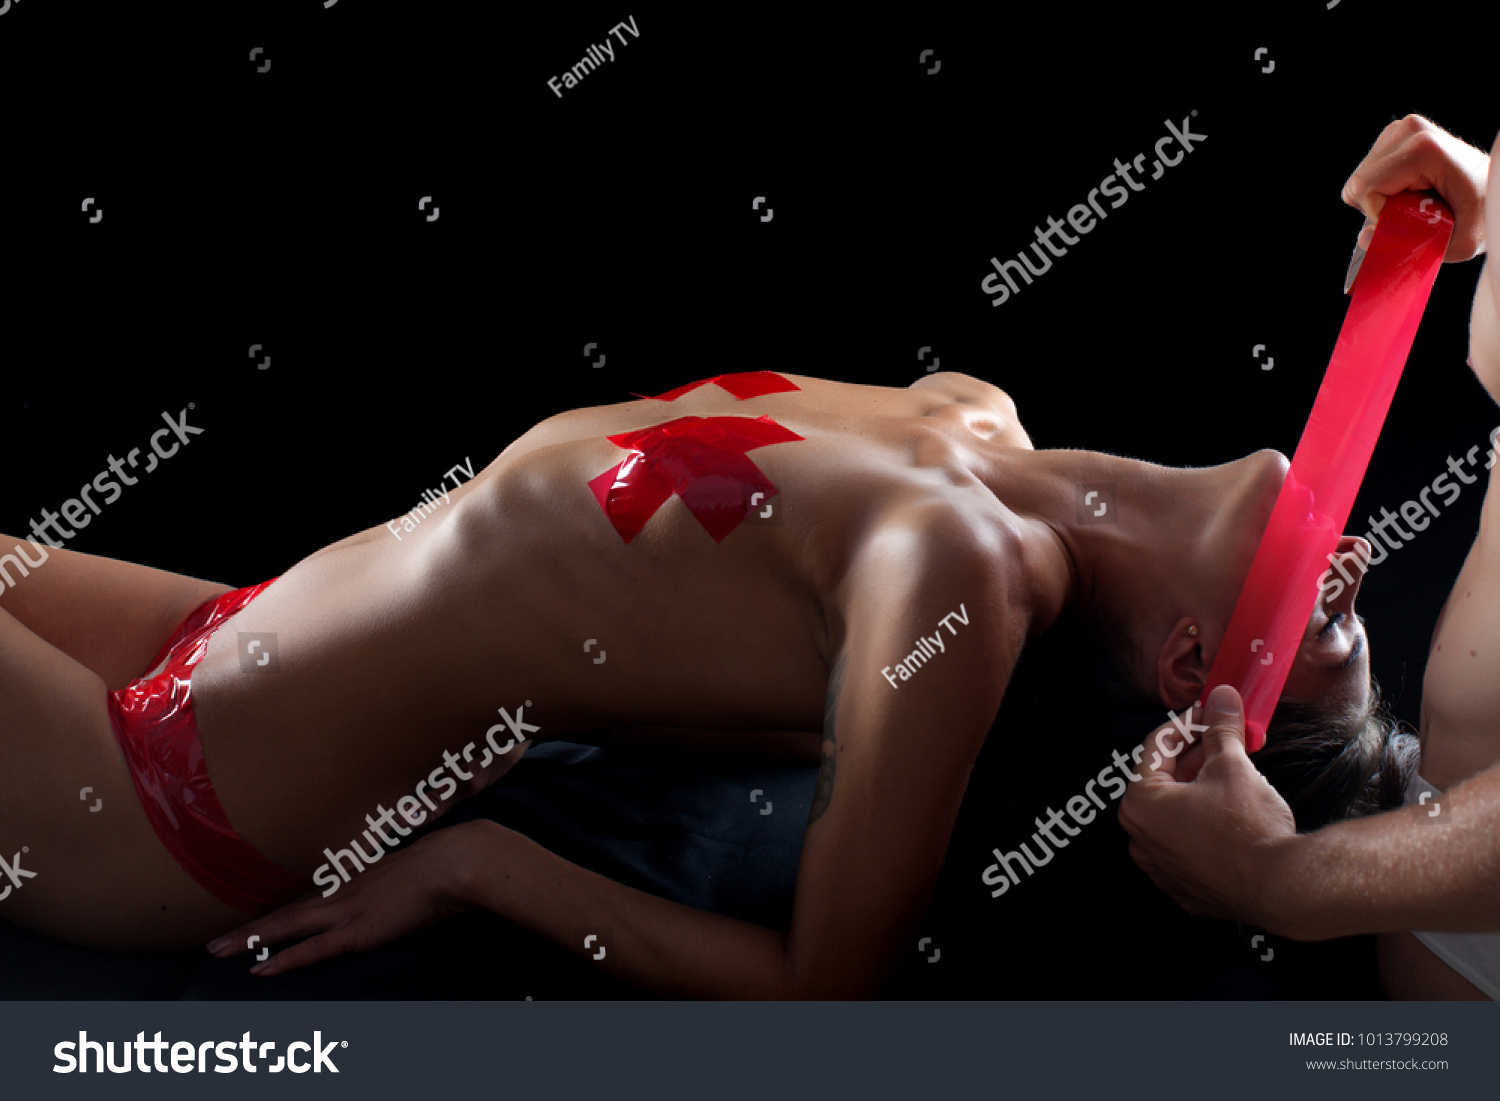 Erotic game play. Sensual. Passionate. Adult. Couple in love